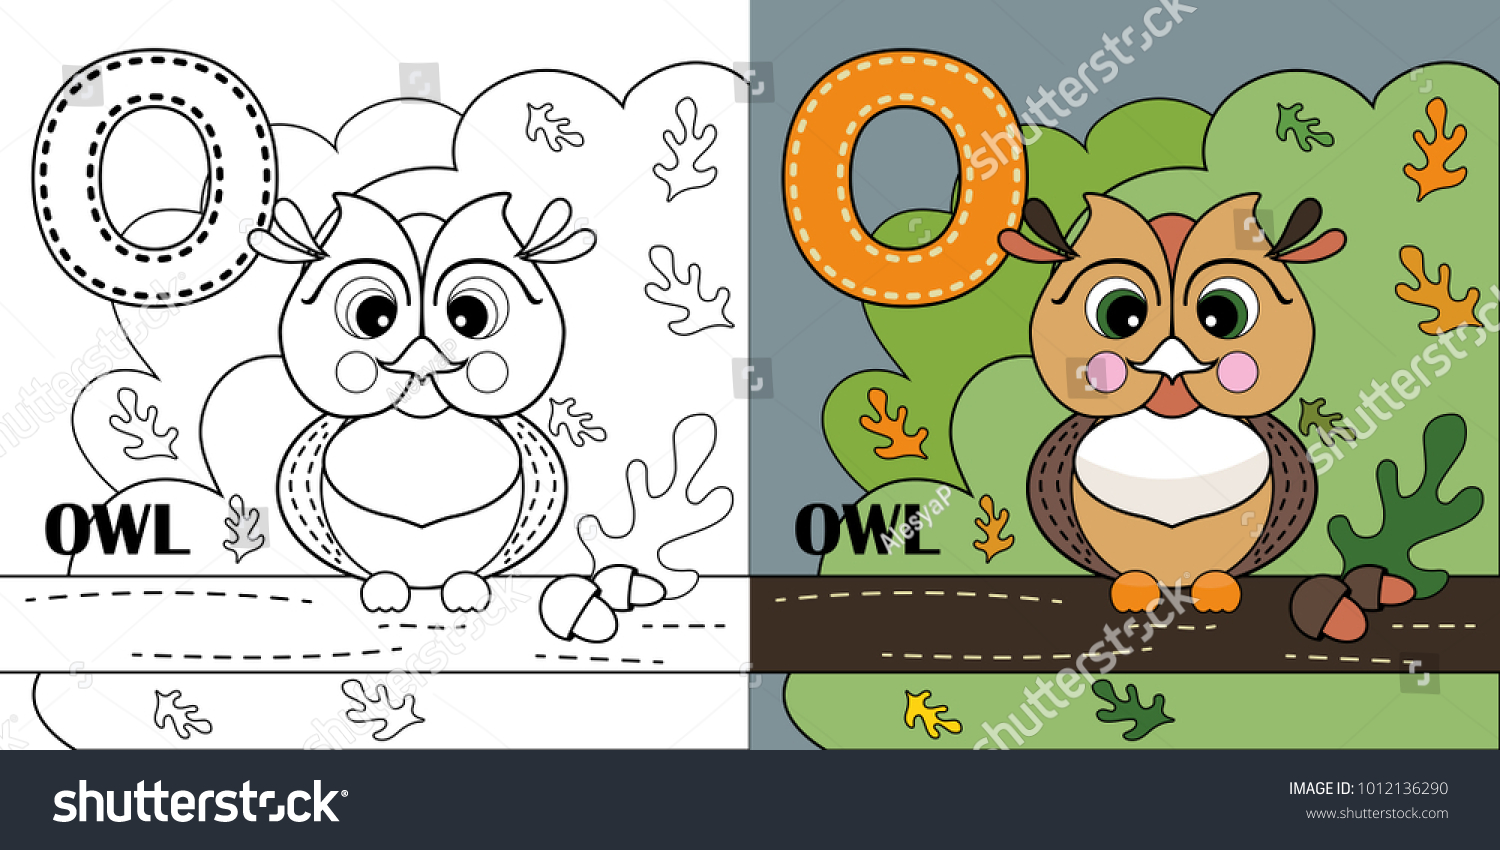 O Letter Owl Coloring Book Page Stock Vector 1012136290 - Shutterstock